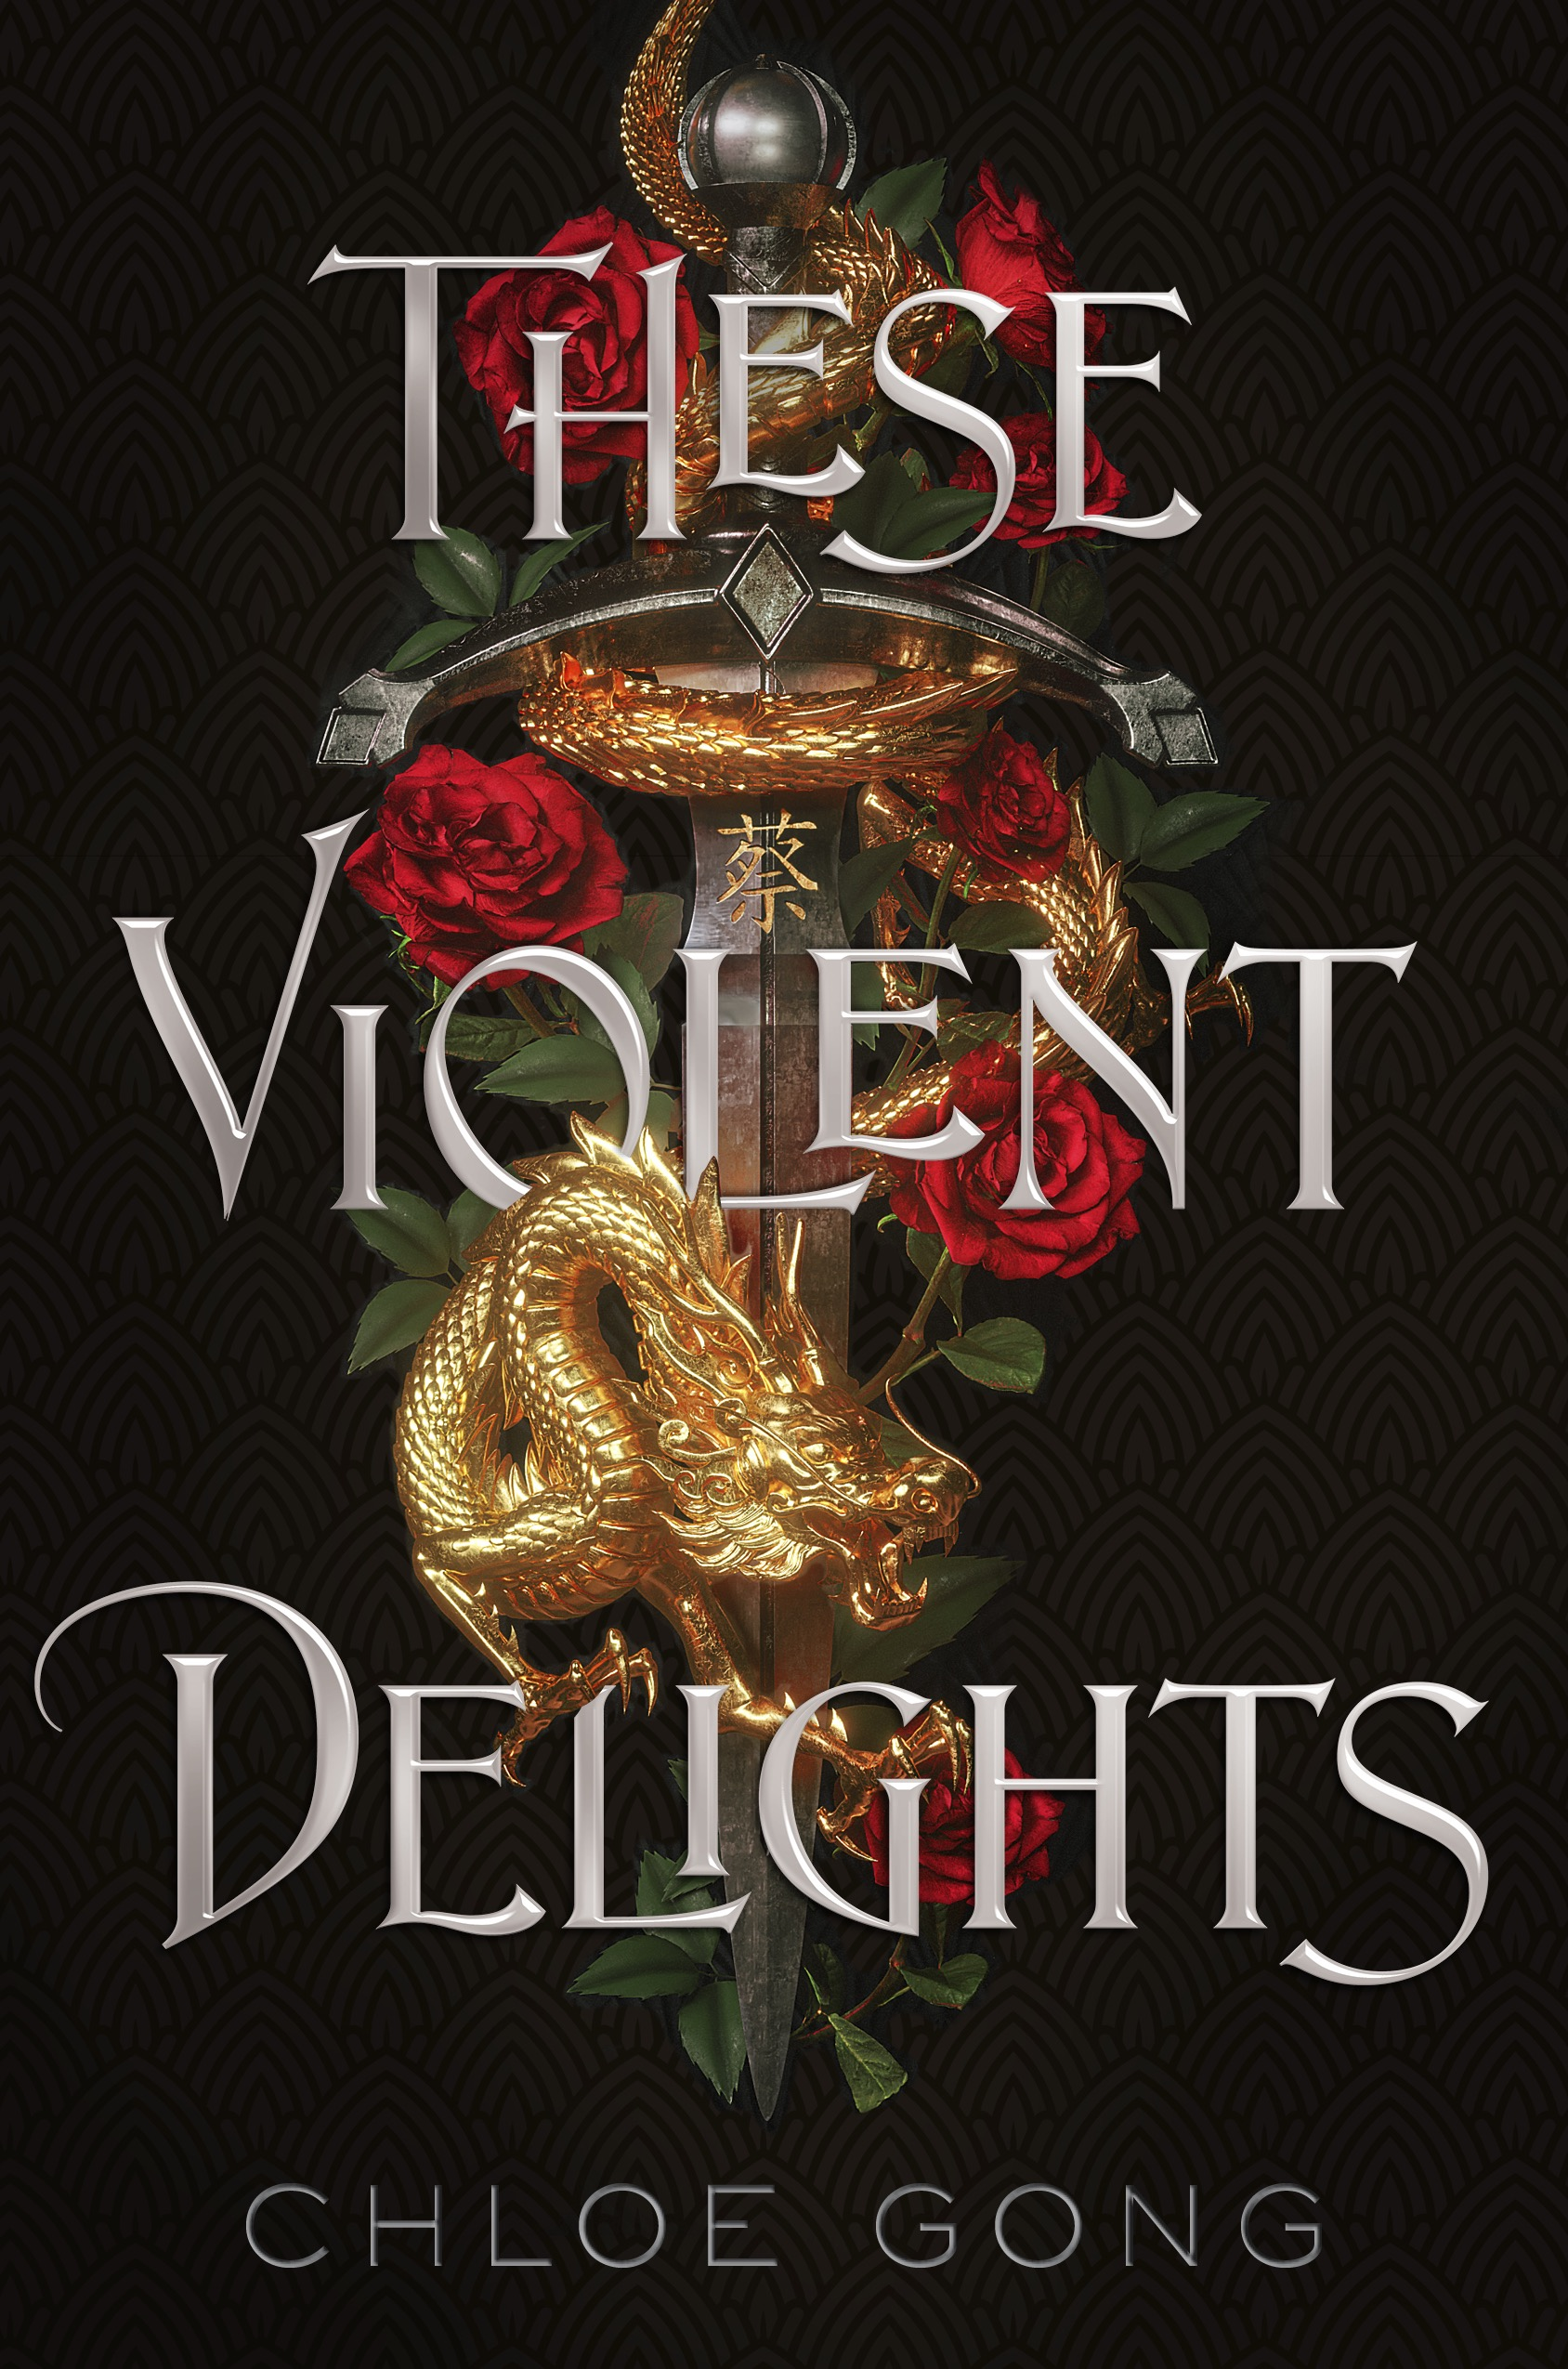 These Violent Delights by Chloe Gong